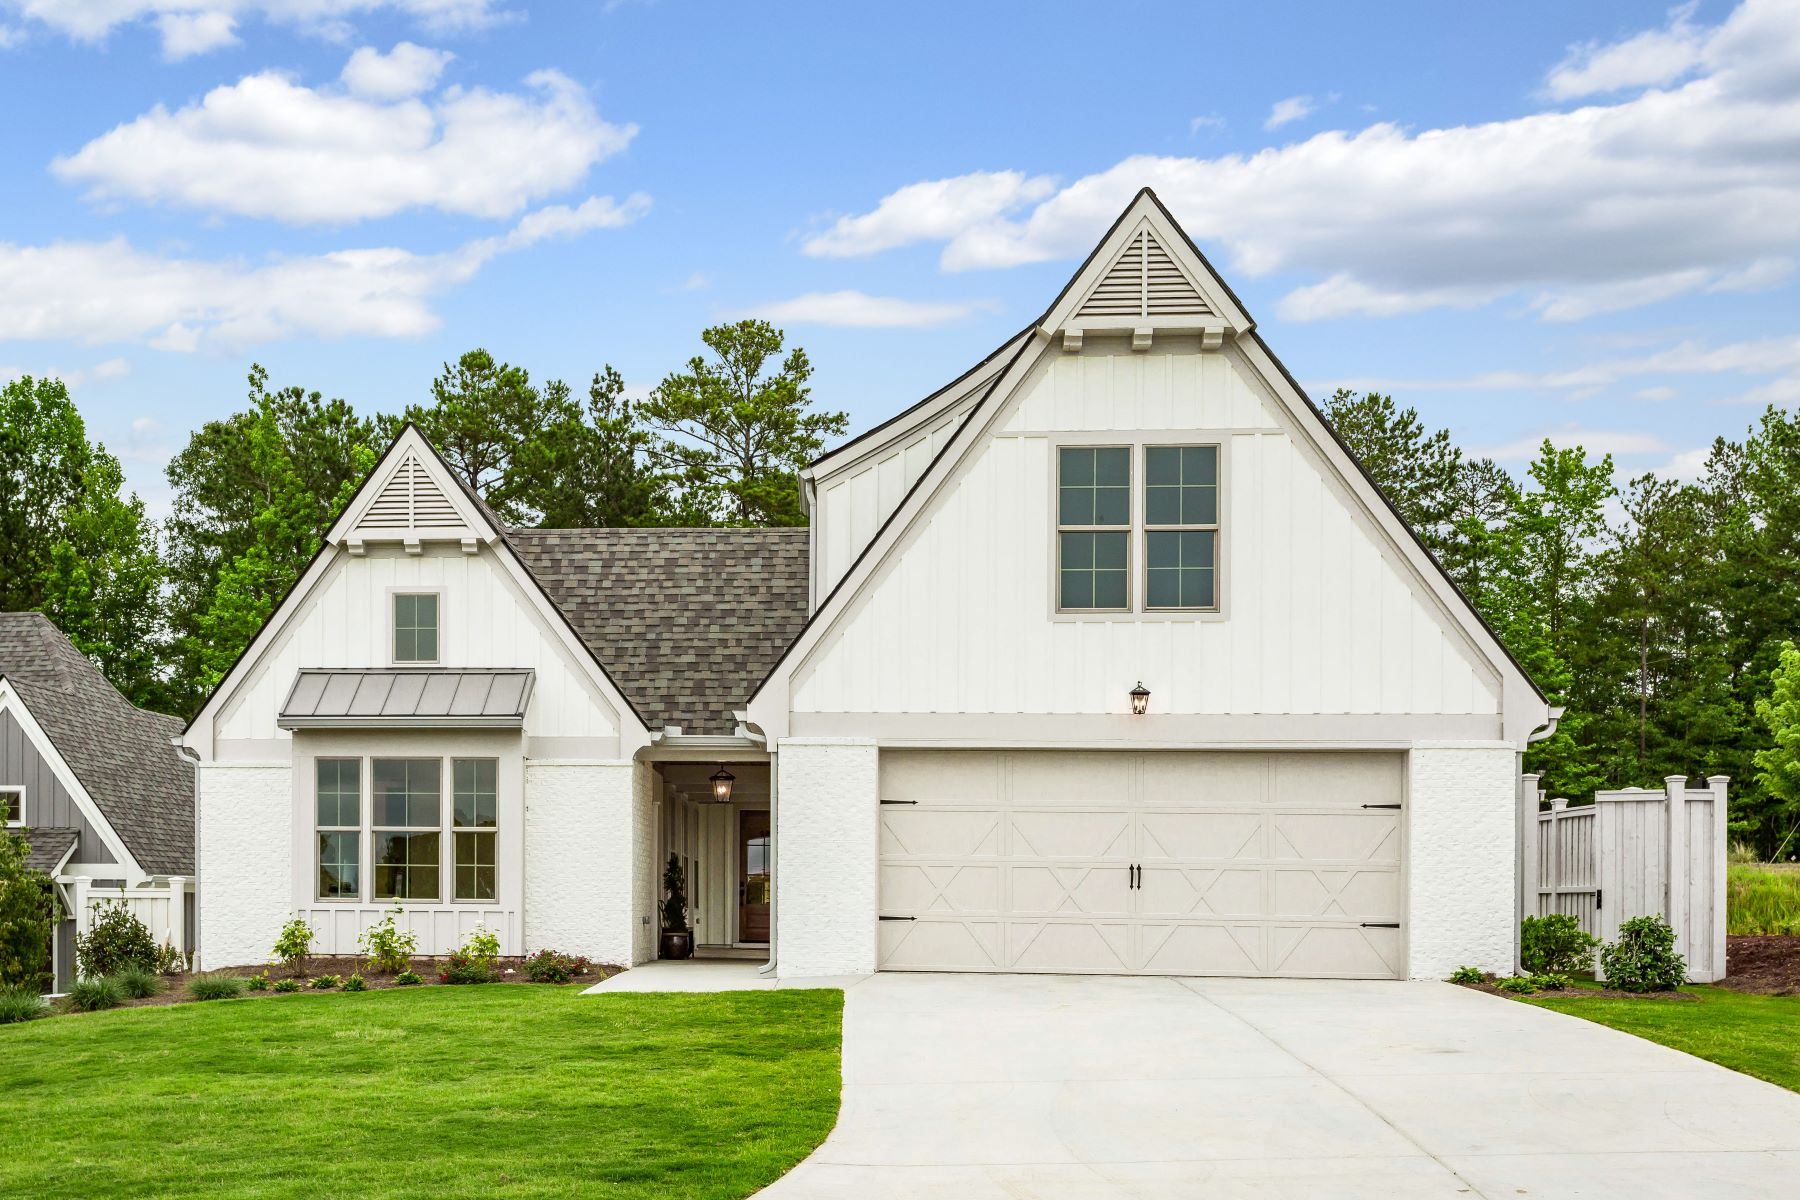 Single Family Homes for Active at New Construction Ranch With A Courtyard in 55+ Community! 15 Arbor Garden Circle Newnan, Georgia 30265 United States